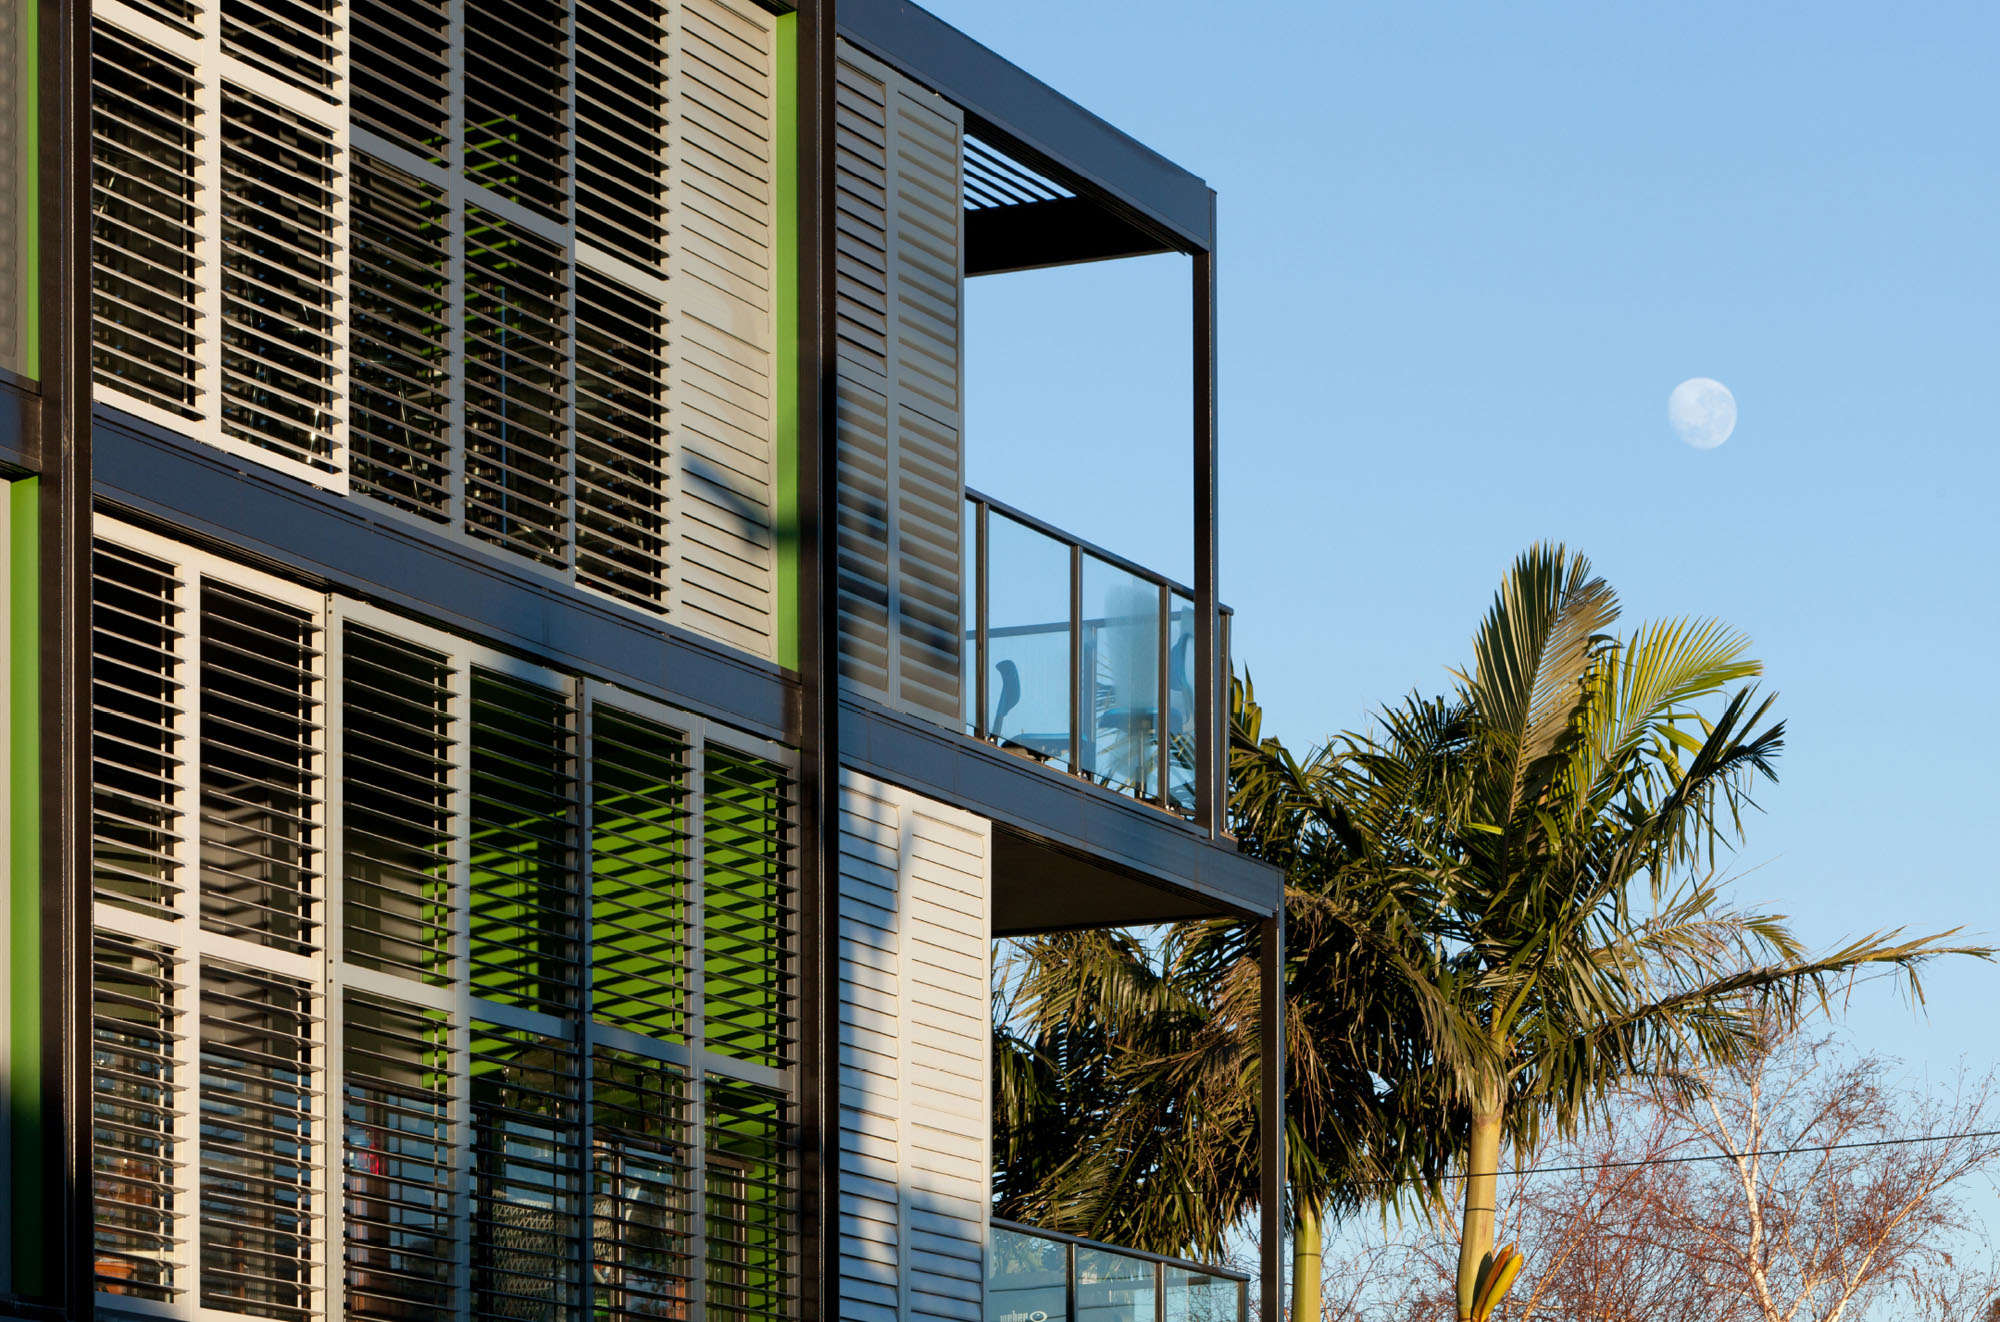 Ascui & Co Linear Apartments